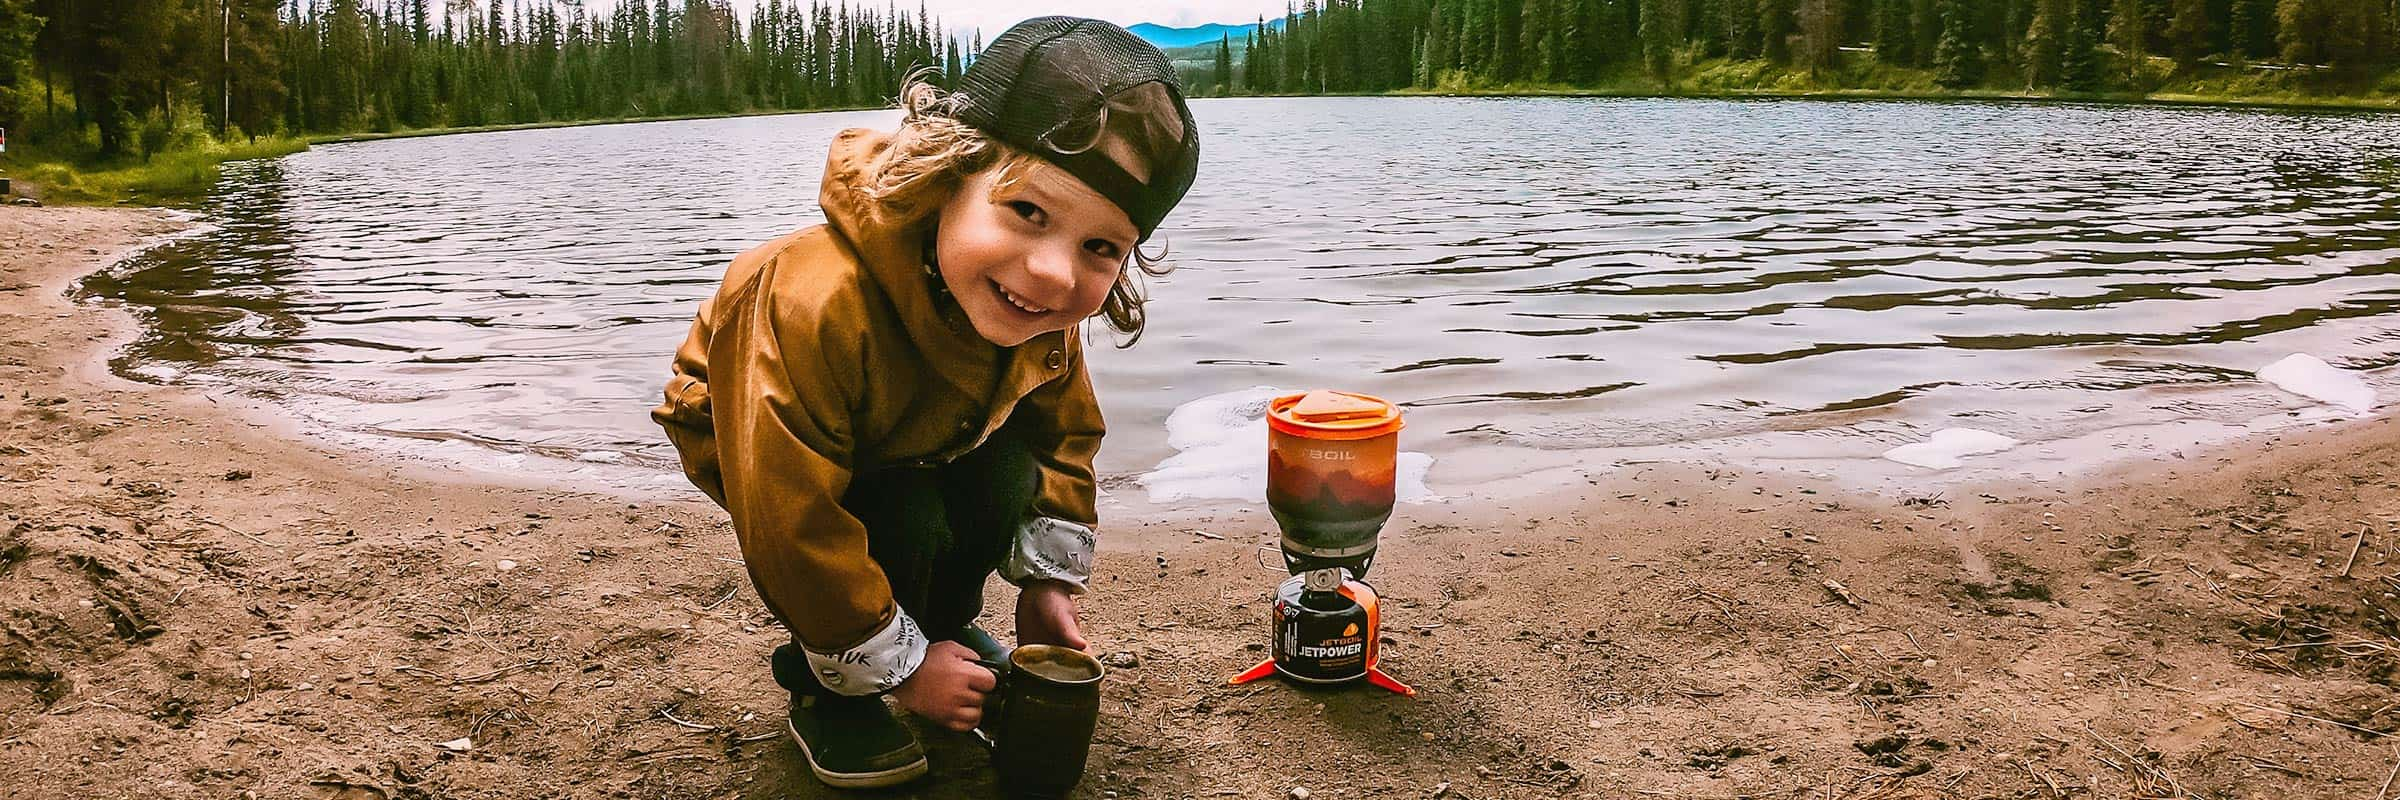 Jetboil Minimo Cooking System Review